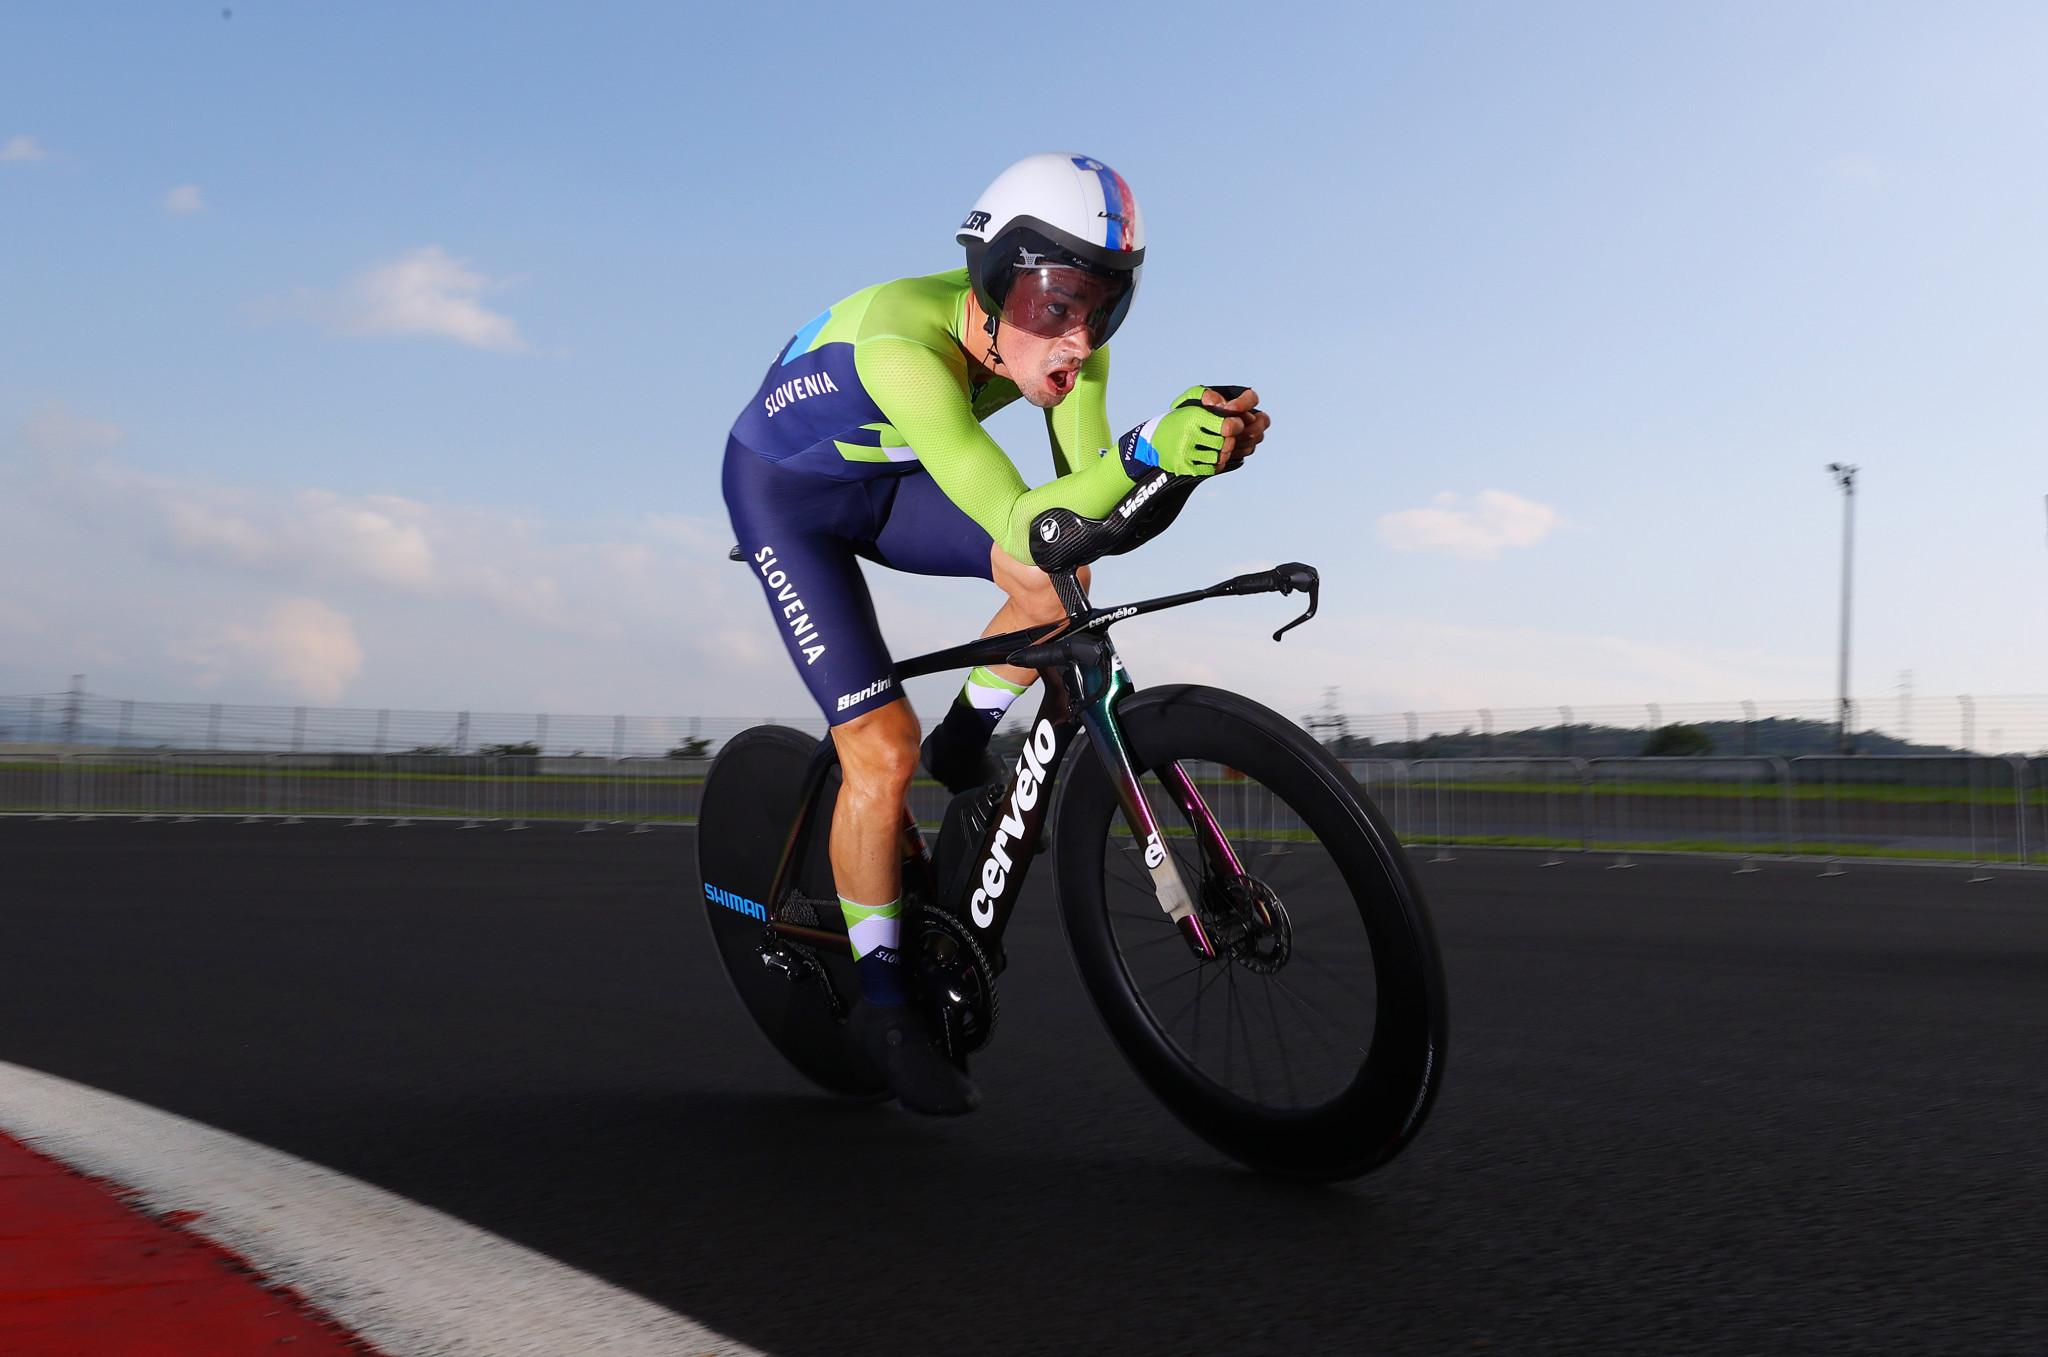 Slovenia's Primož Roglič was crowned men's Olympic individual time trial champion at the Izu International Speedway, bouncing back from Tour de France disappointment in fine fashion ©Getty Images